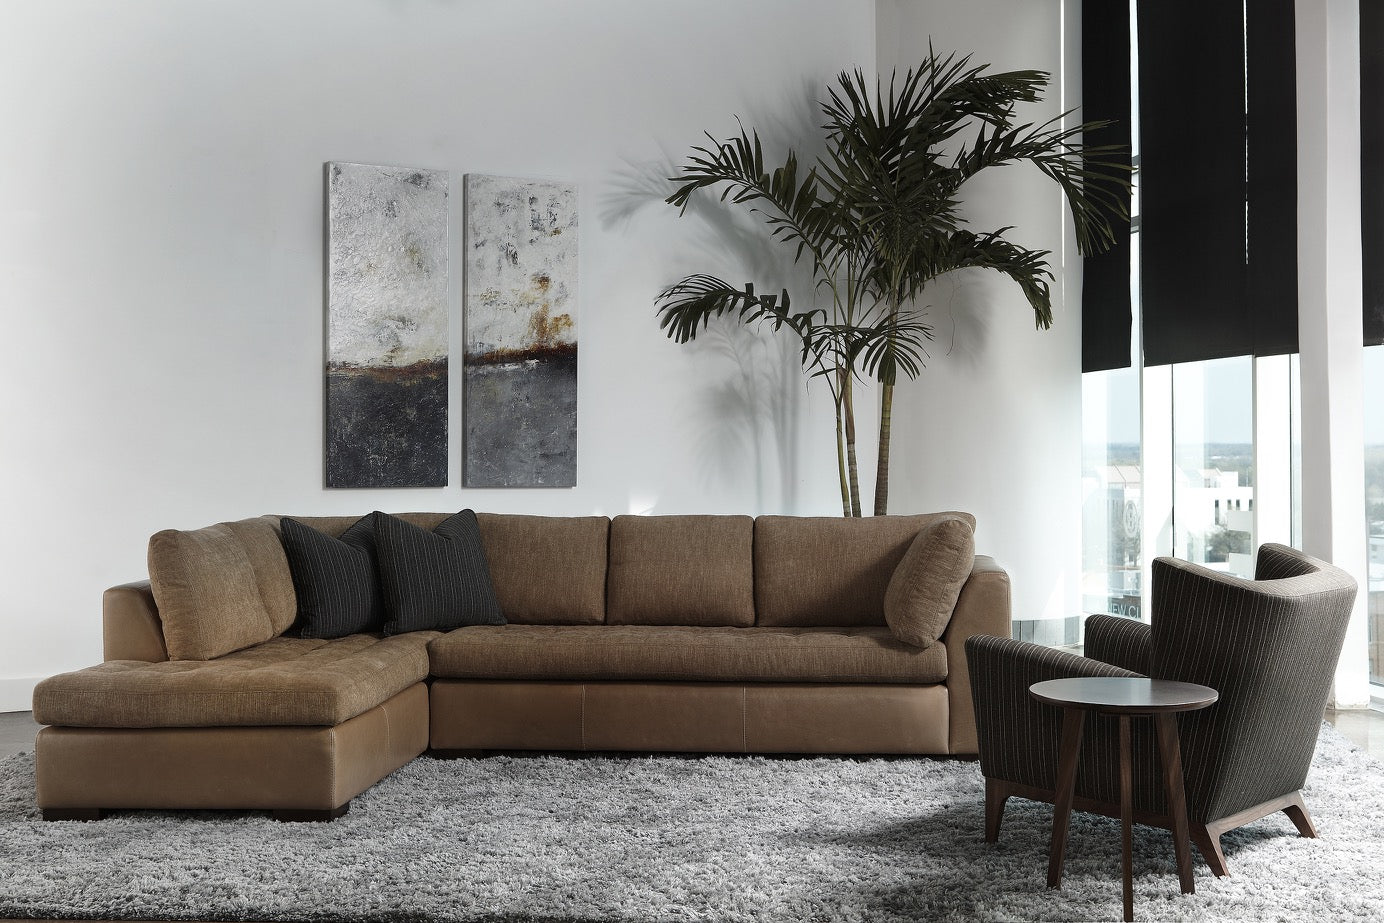 Astoria Sofa by American Leather with Contrasting Covers